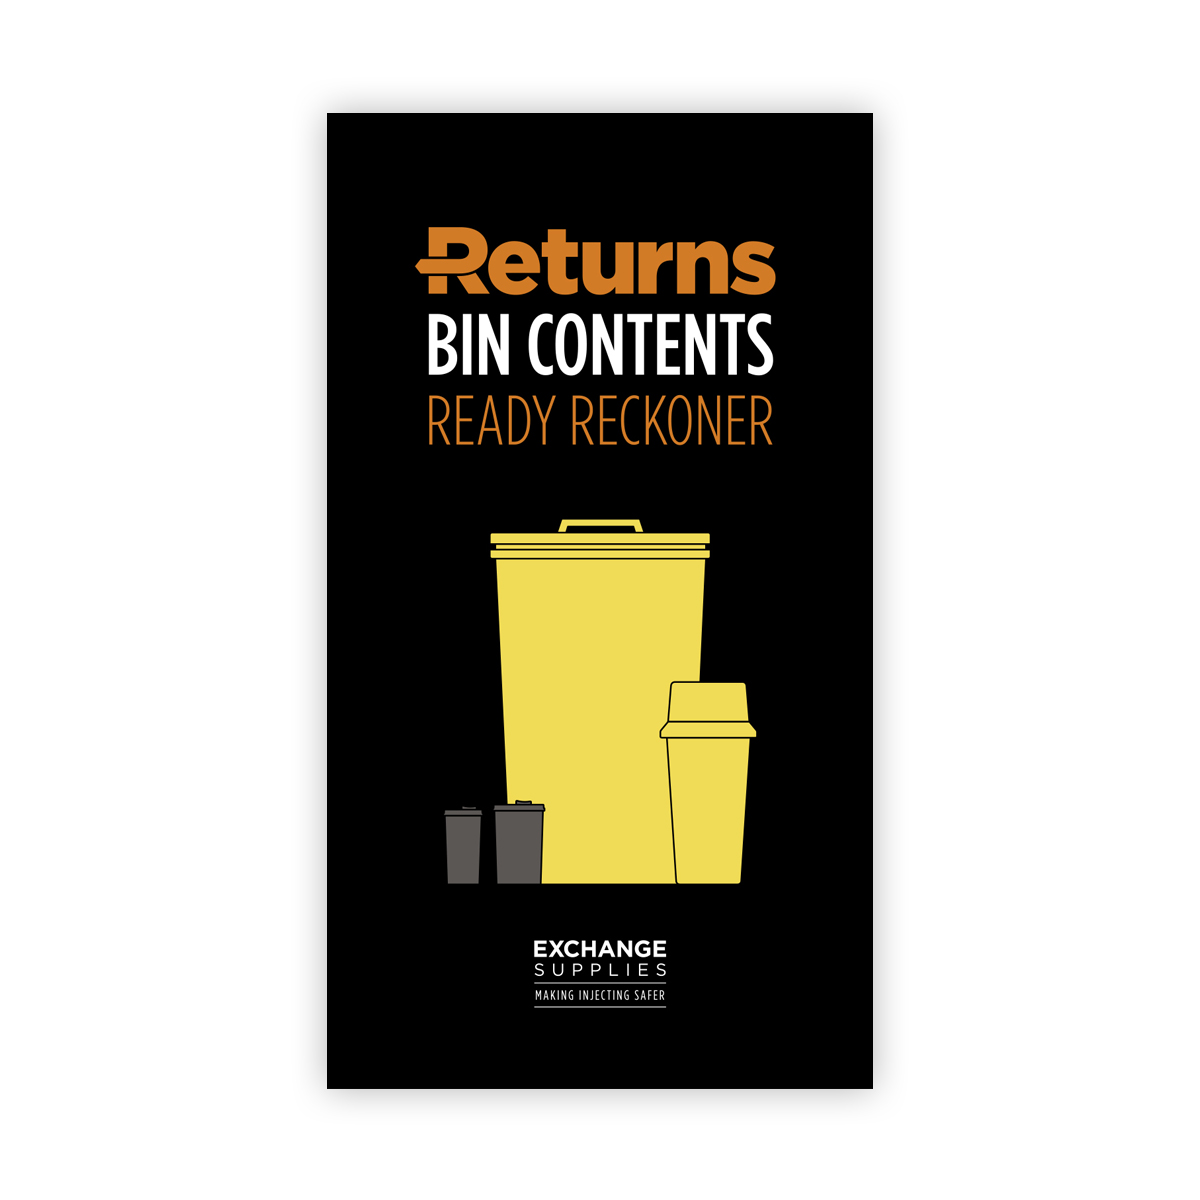 Bin contents ready reckoner